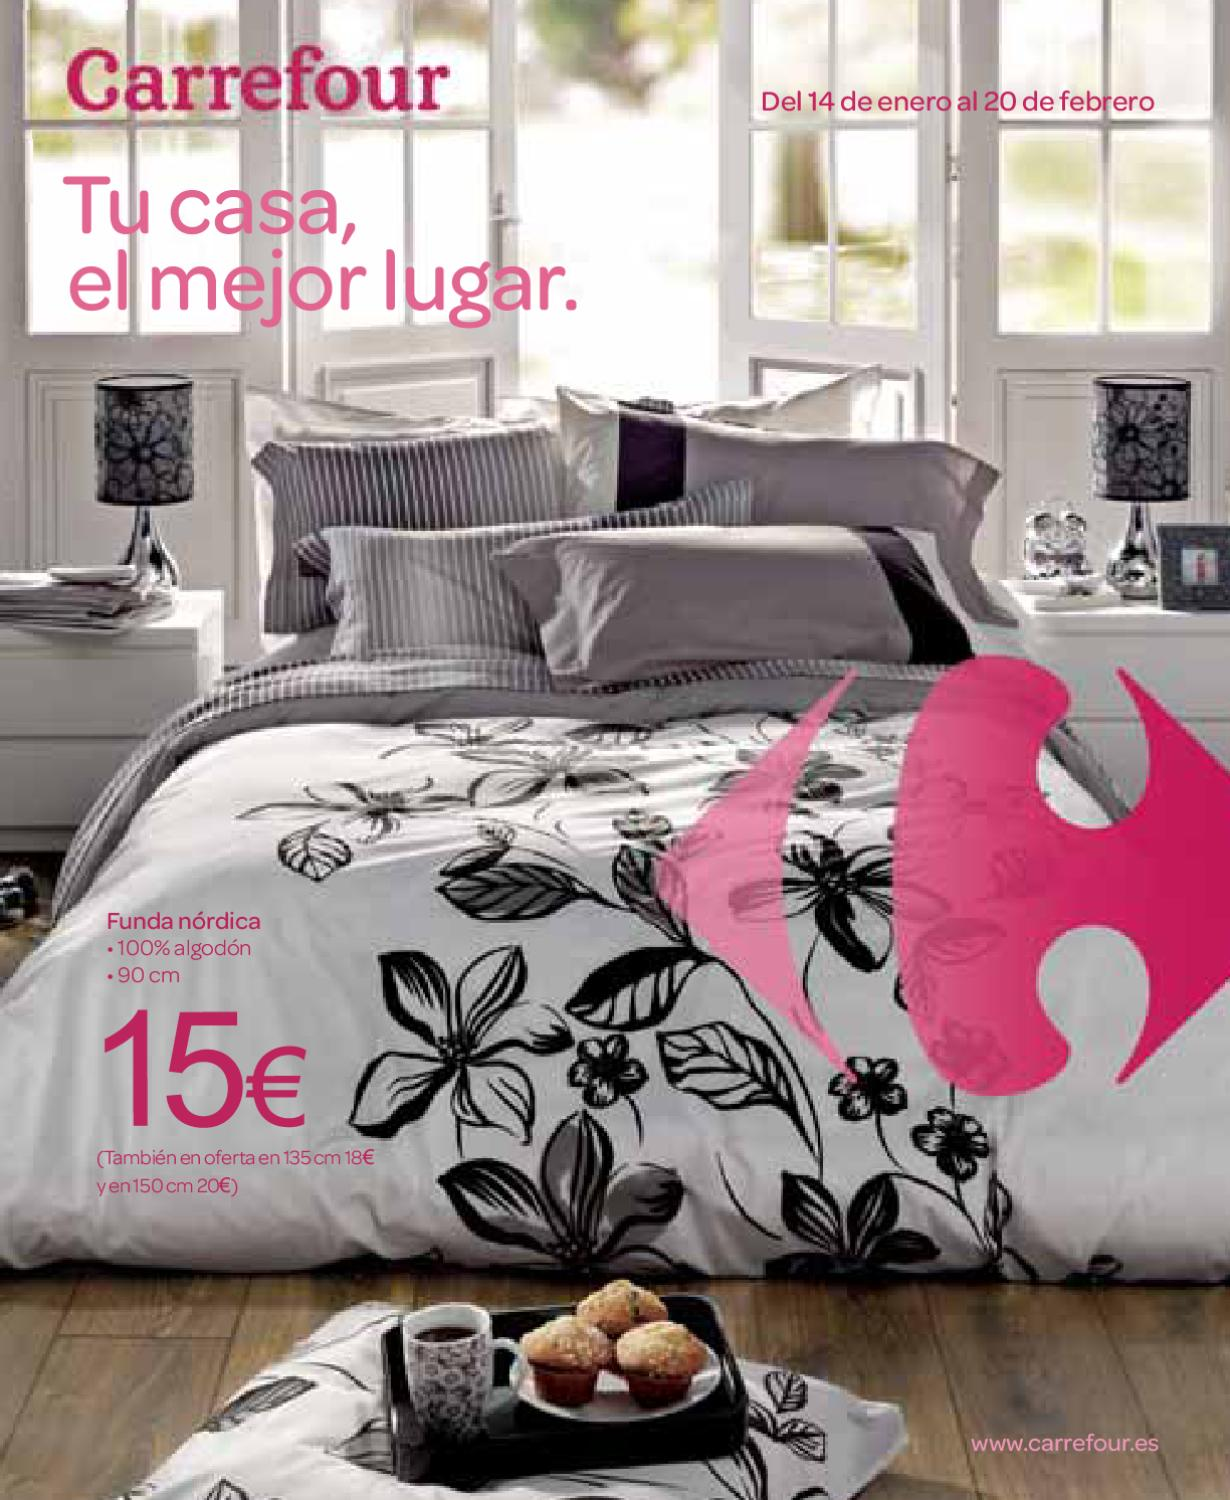 fundas nordicas carrefour